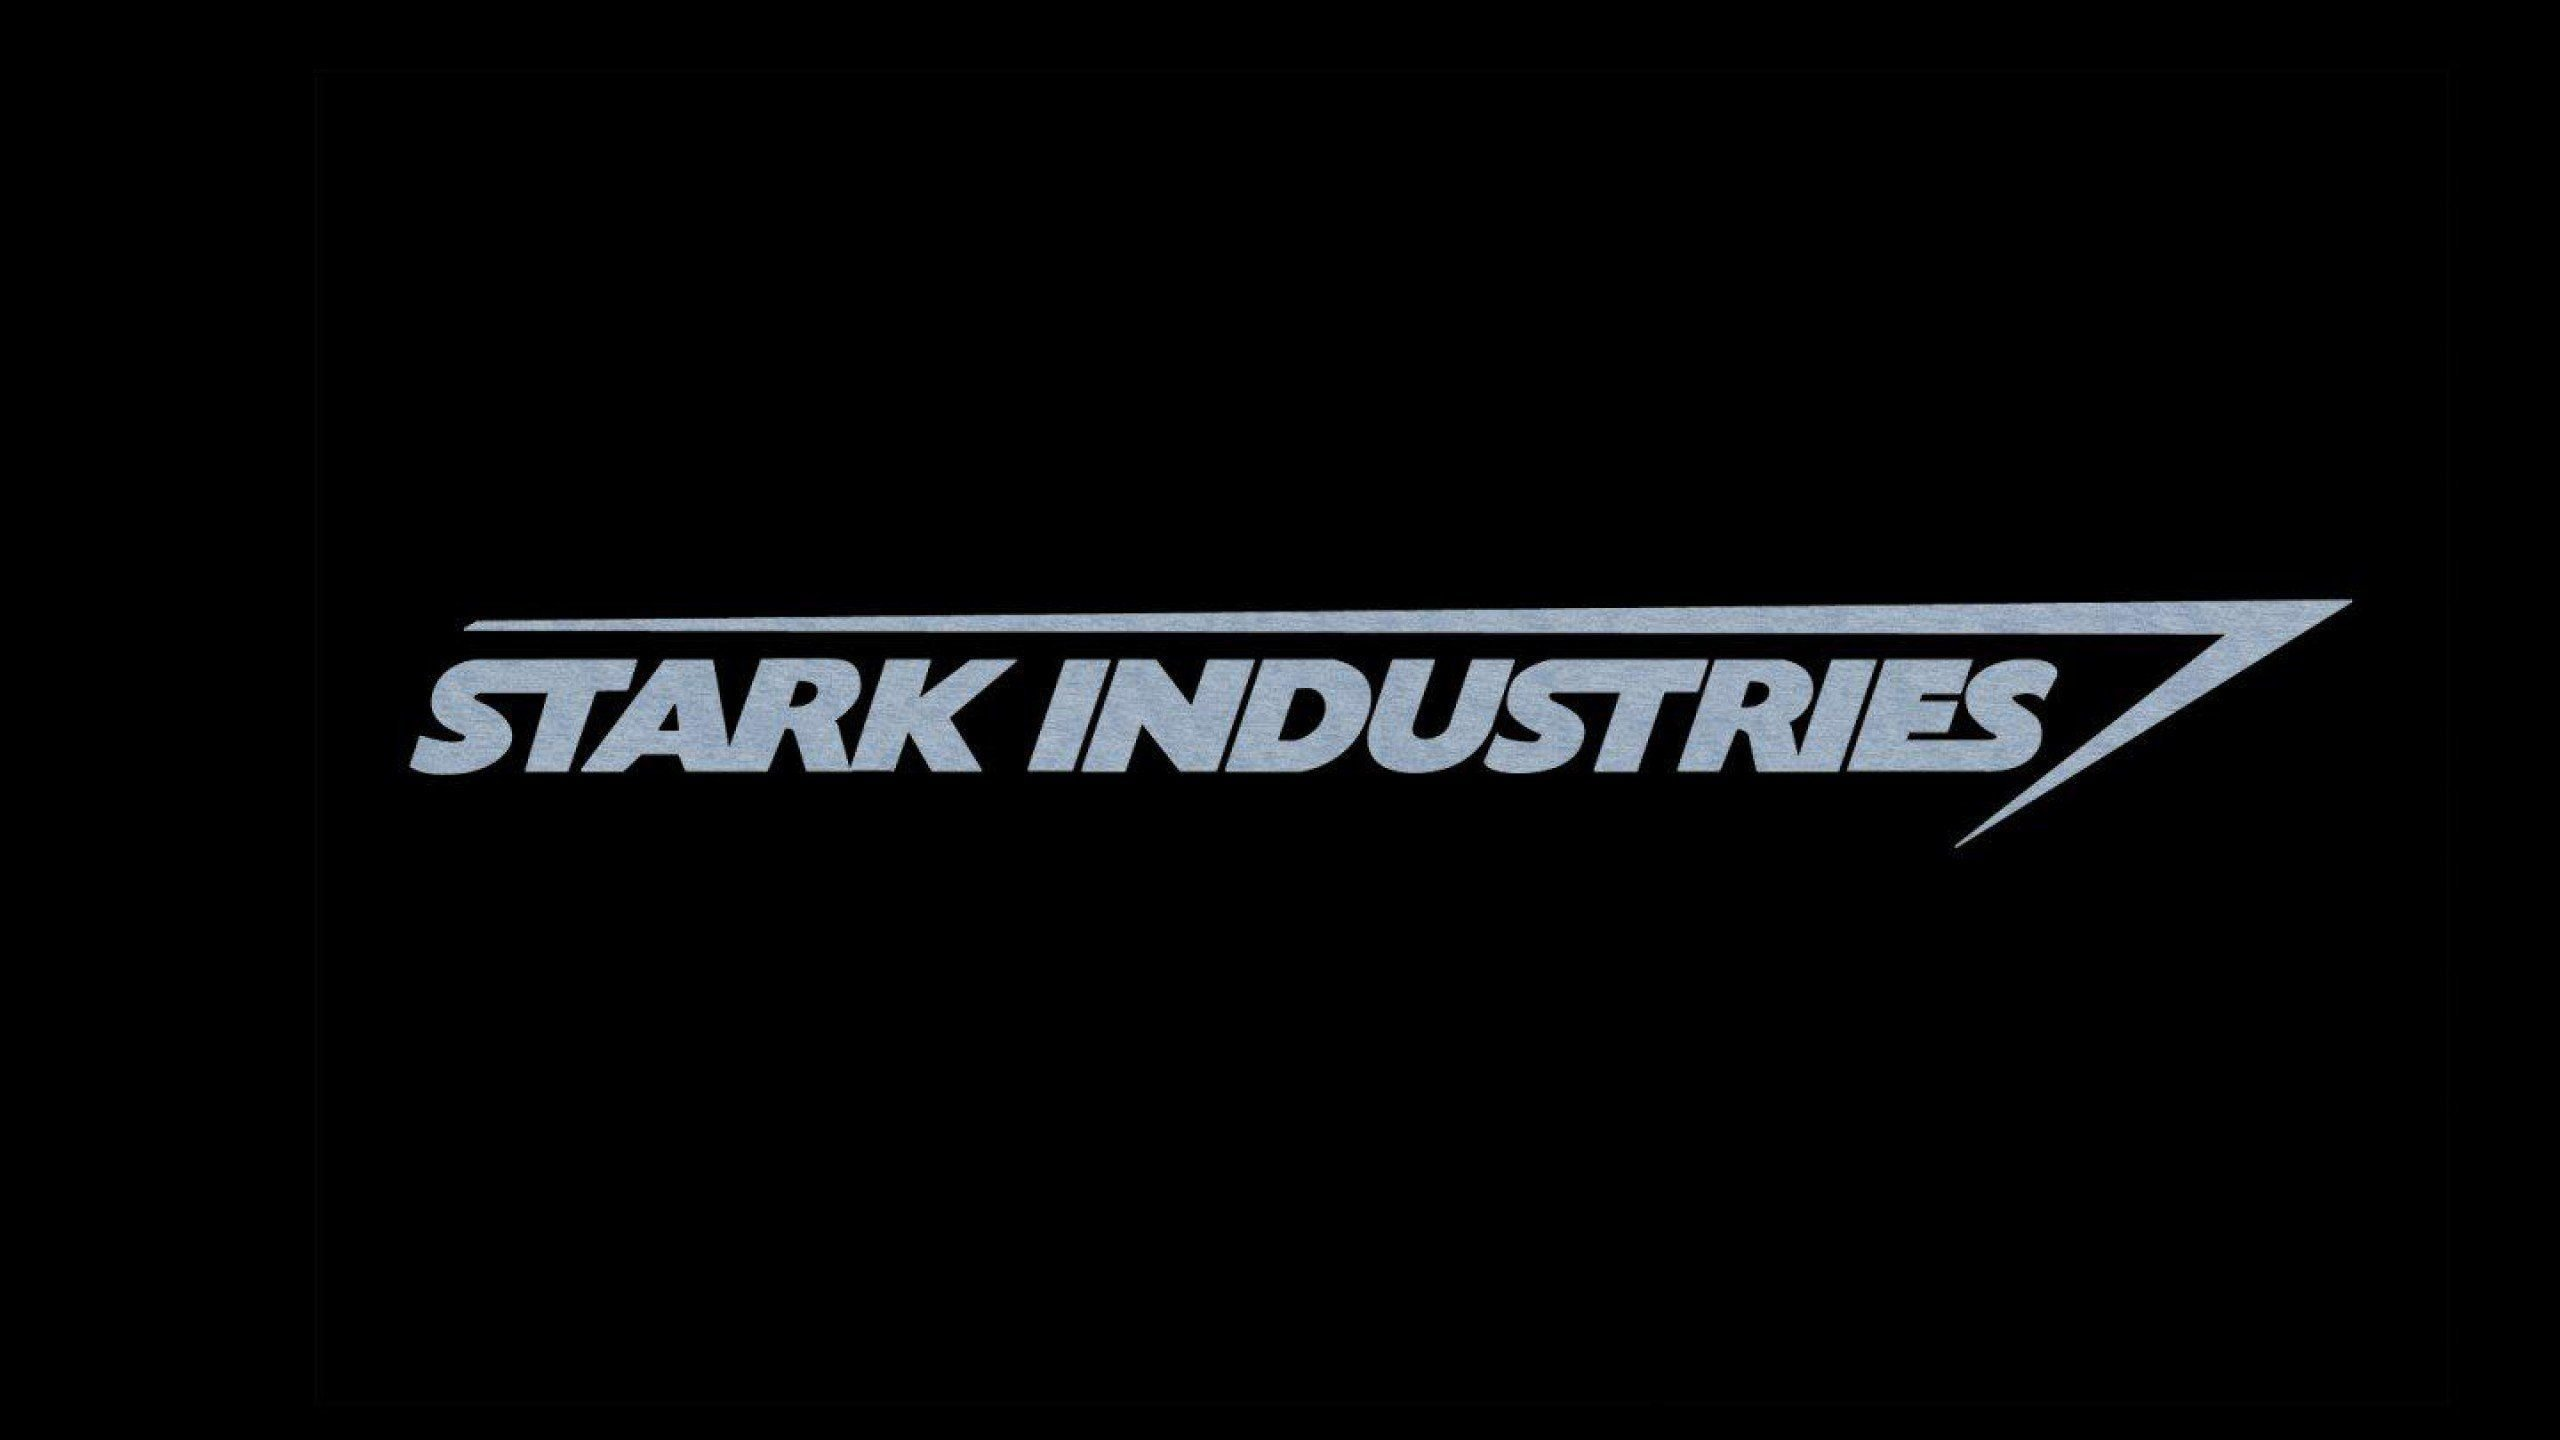 View House Stark Logo Wallpaper Pictures